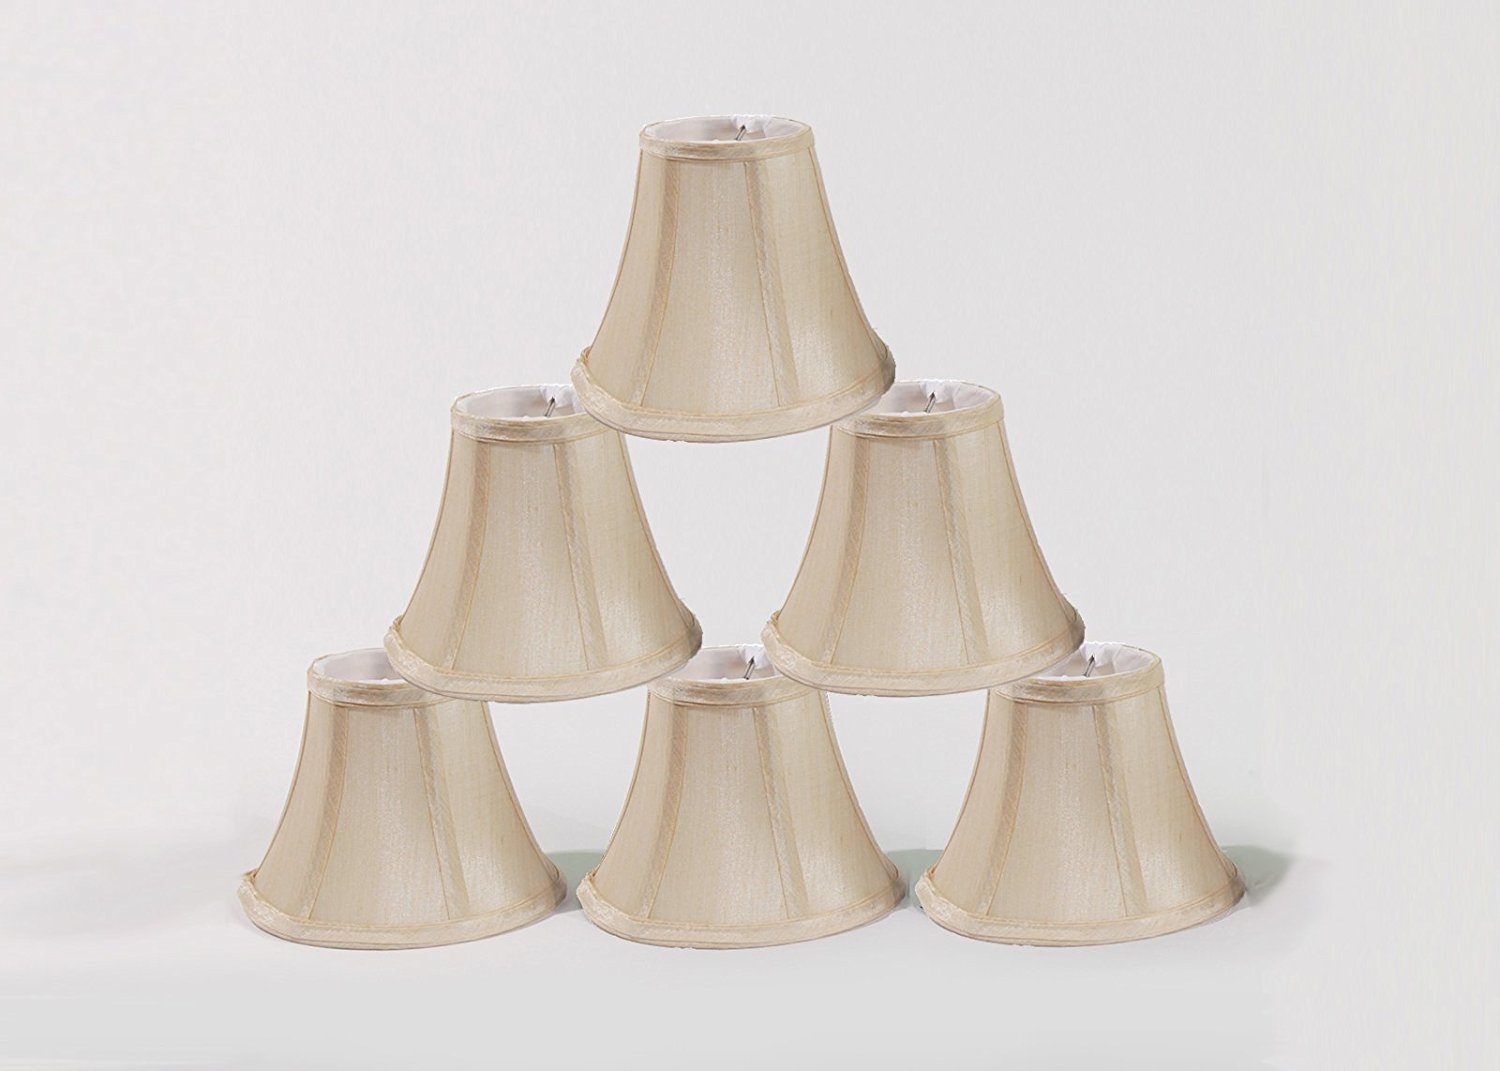 Urbanest Chandelier Lamp Shades Set Of 6 Soft Bell 3x 6x 5 Throughout Clip On Chandelier Lamp Shades (Image 24 of 25)